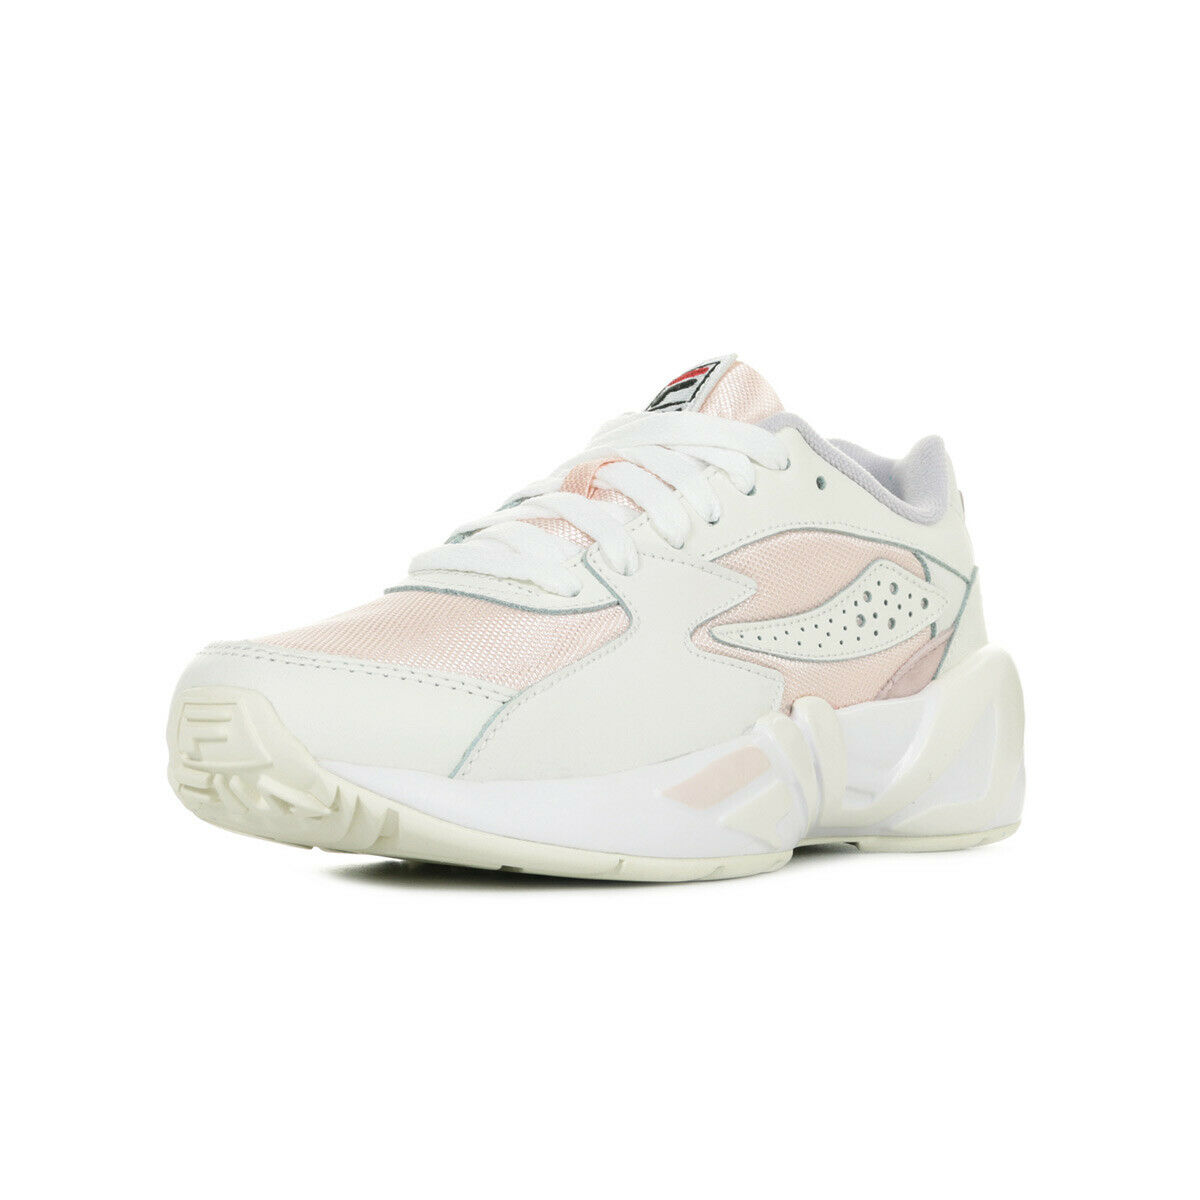 Chaussures Baskets Fila femme Mindblower Wn's taille Blanc Blanche Cuir Lacets